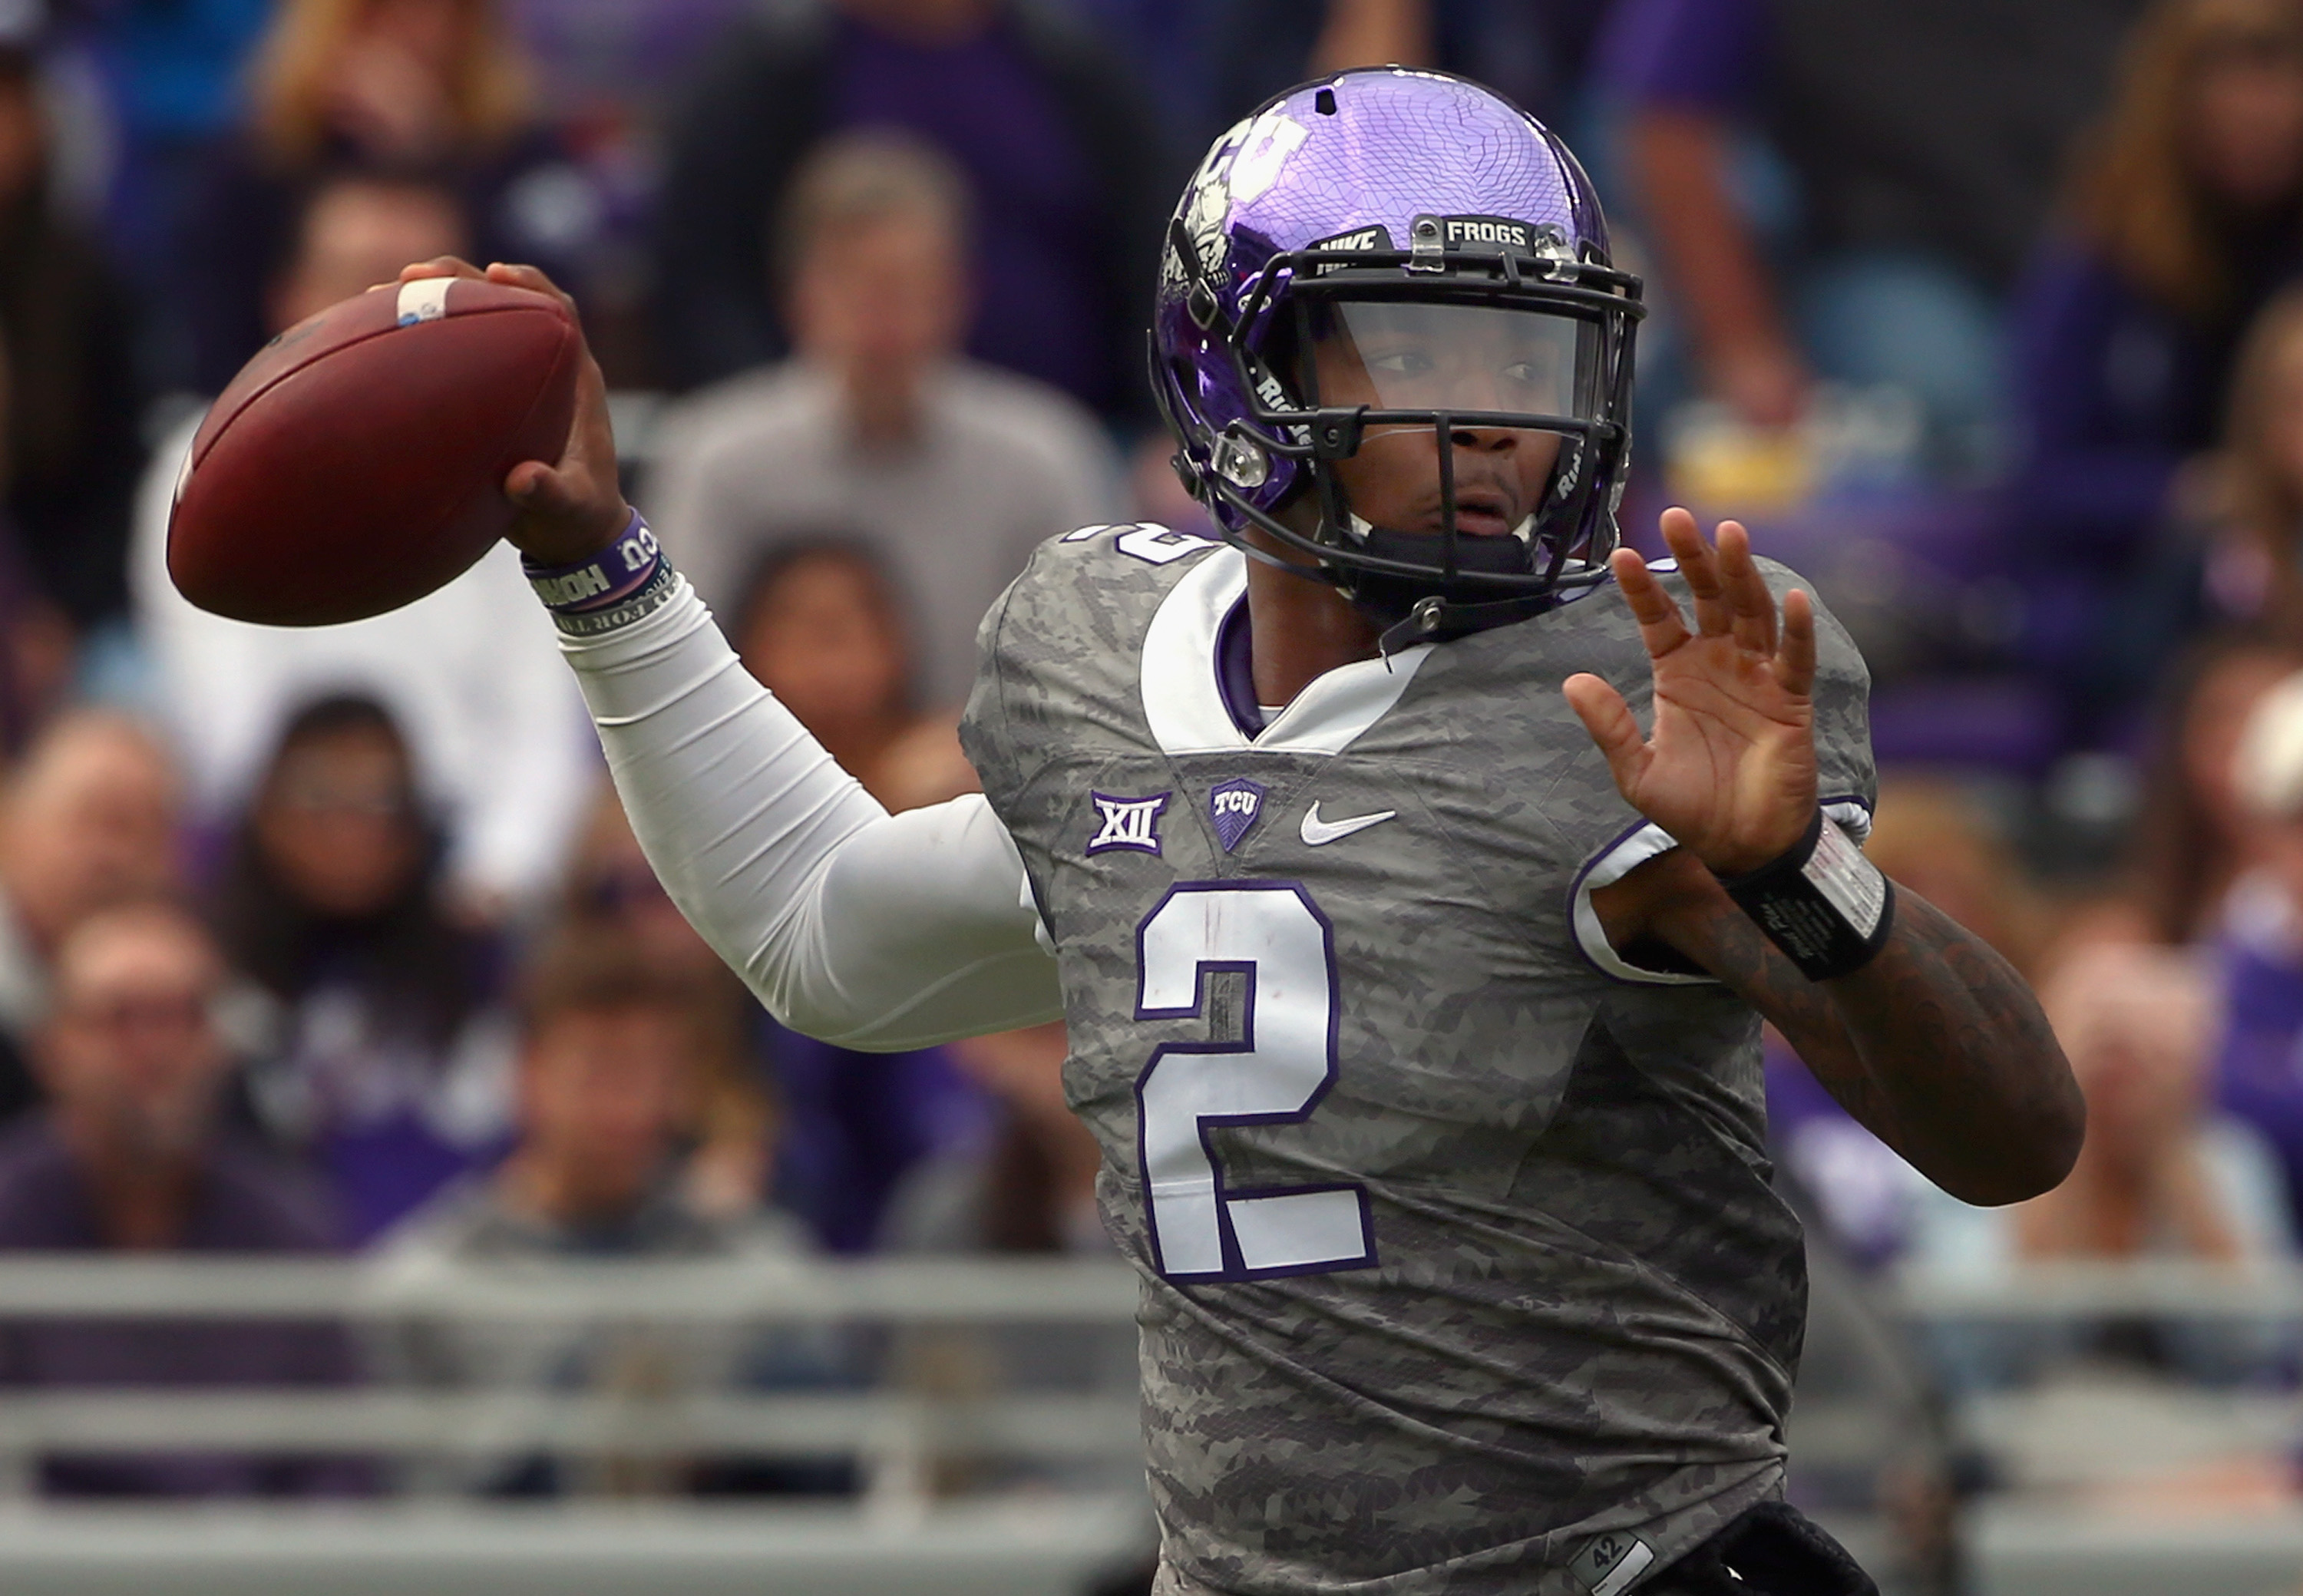 FORT WORTH, TX - NOVEMBER 14:  Trevone Boykin #2 of the TCU Horned Frogs looks for an open receiver against the Kansas Jayhawks in the first quarter at Amon G. Carter Stadium on November 14, 2015 in Fort Worth, Texas.  (Photo by Tom Pennington/Getty Images)